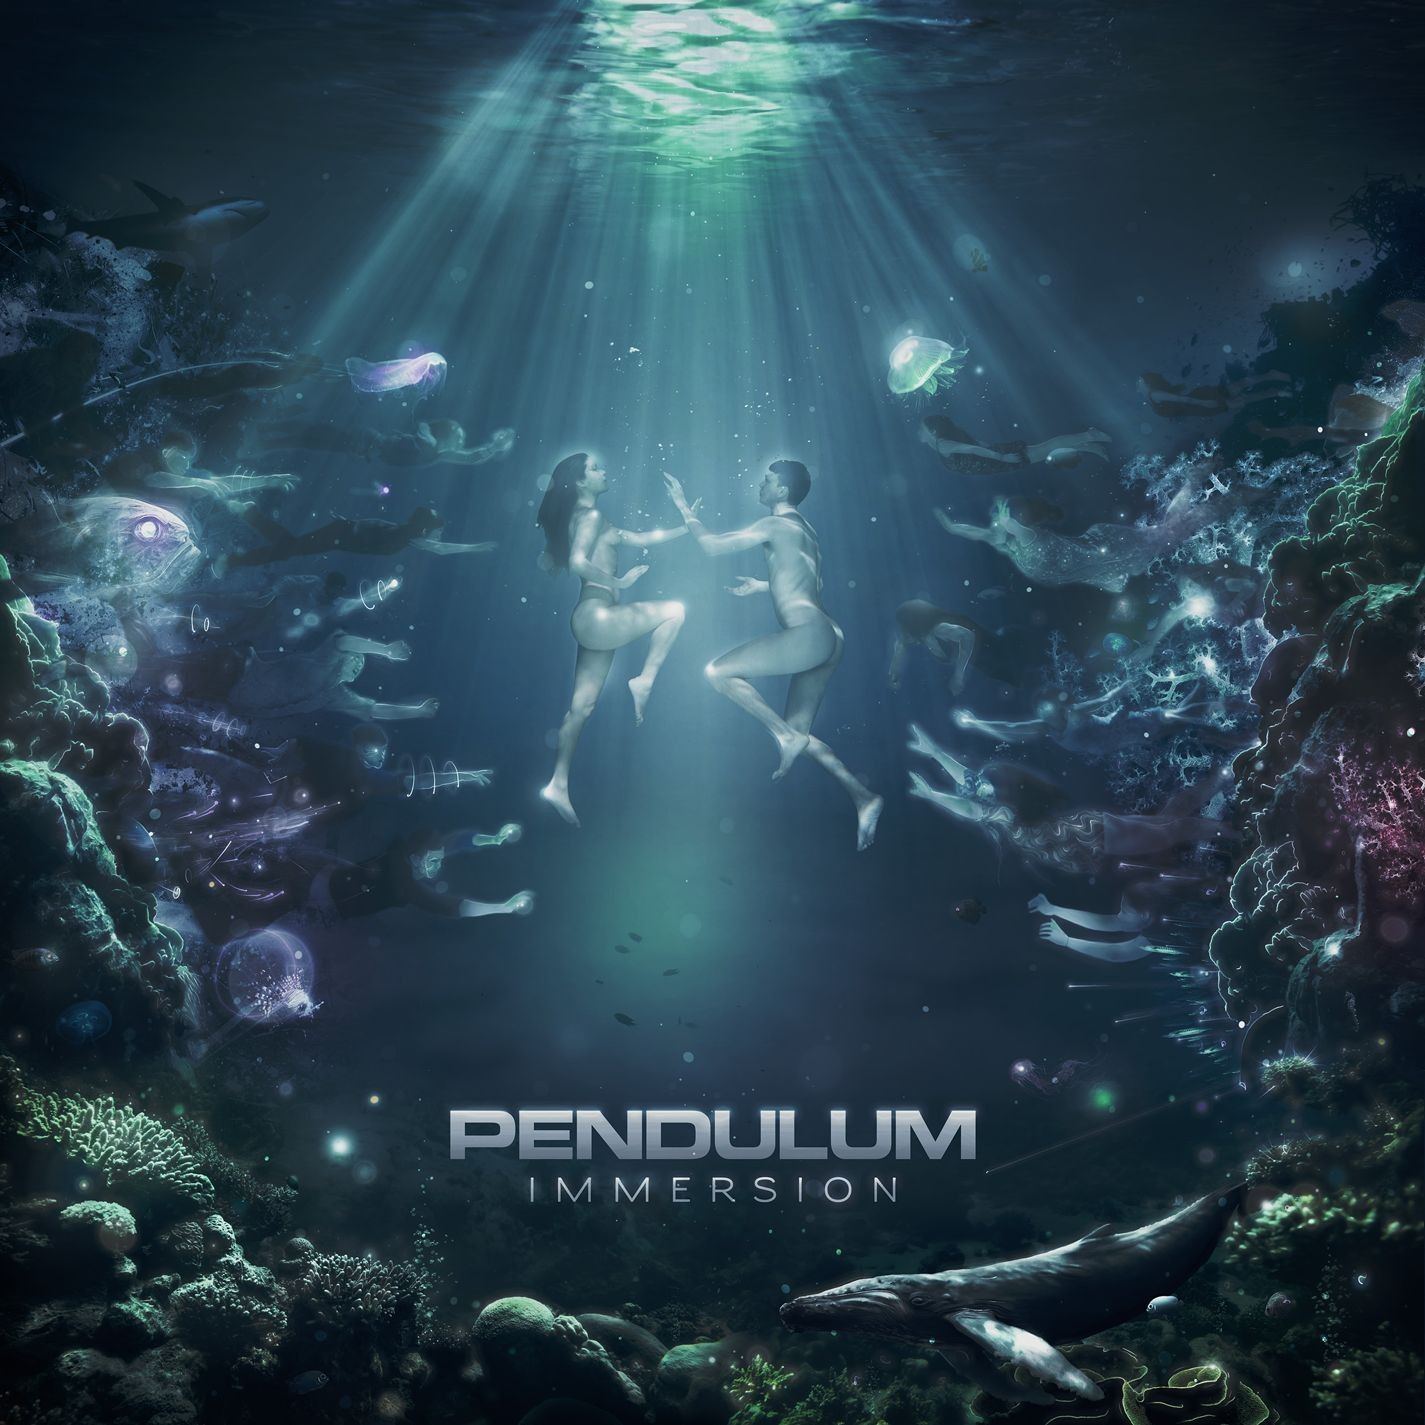 Pendulum - Immersion album cover